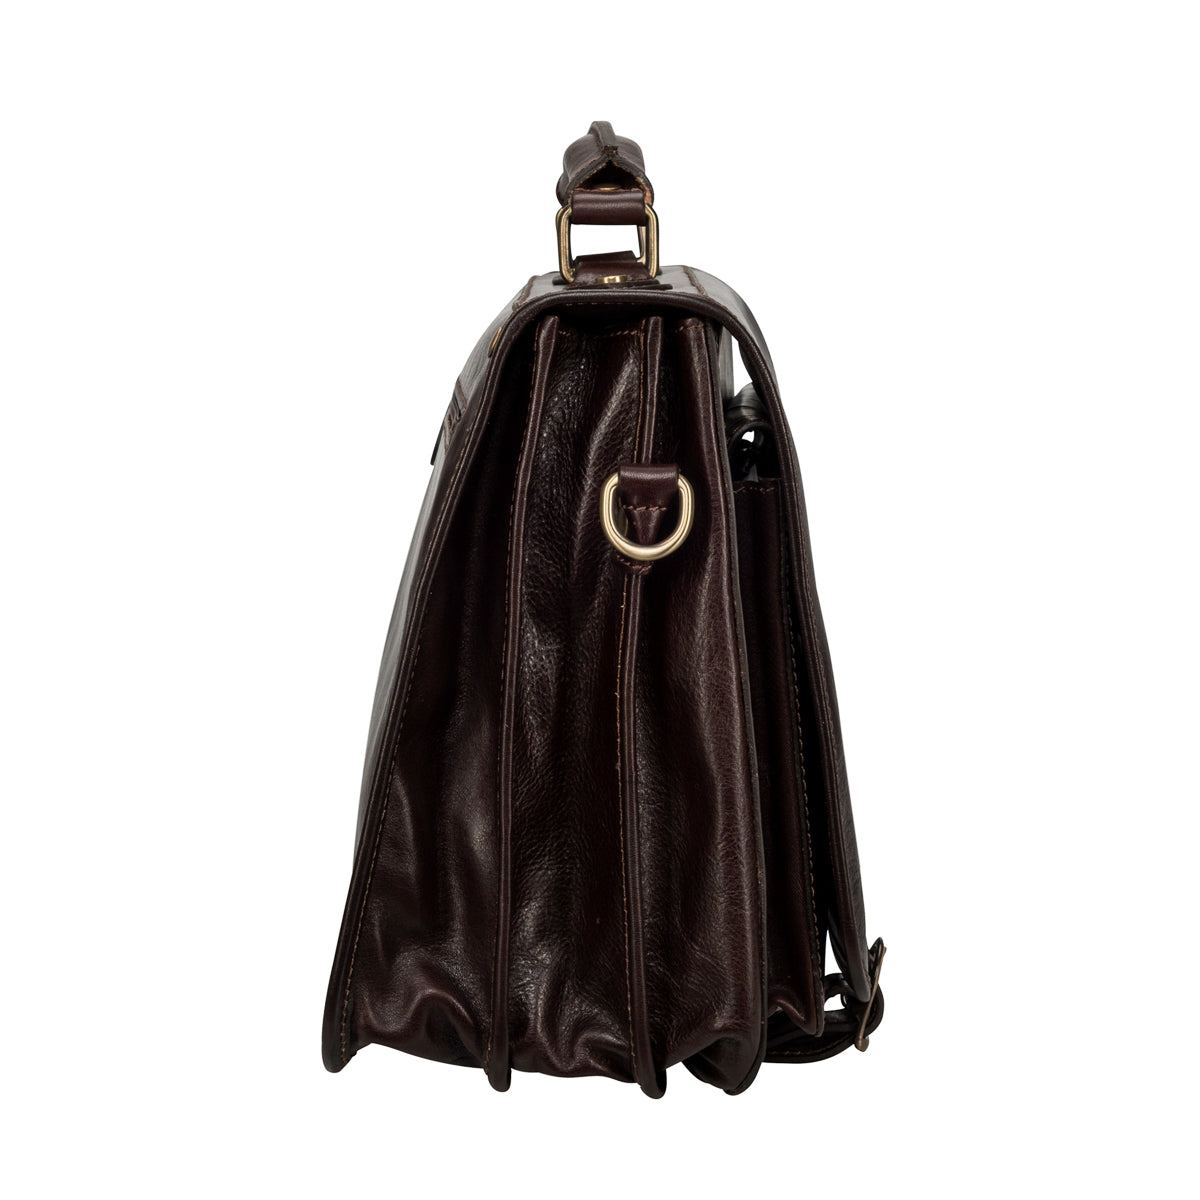 Image 3 of the 'Jesolo Tre' Dark Chocolate Veg-Tanned Leather Satchel